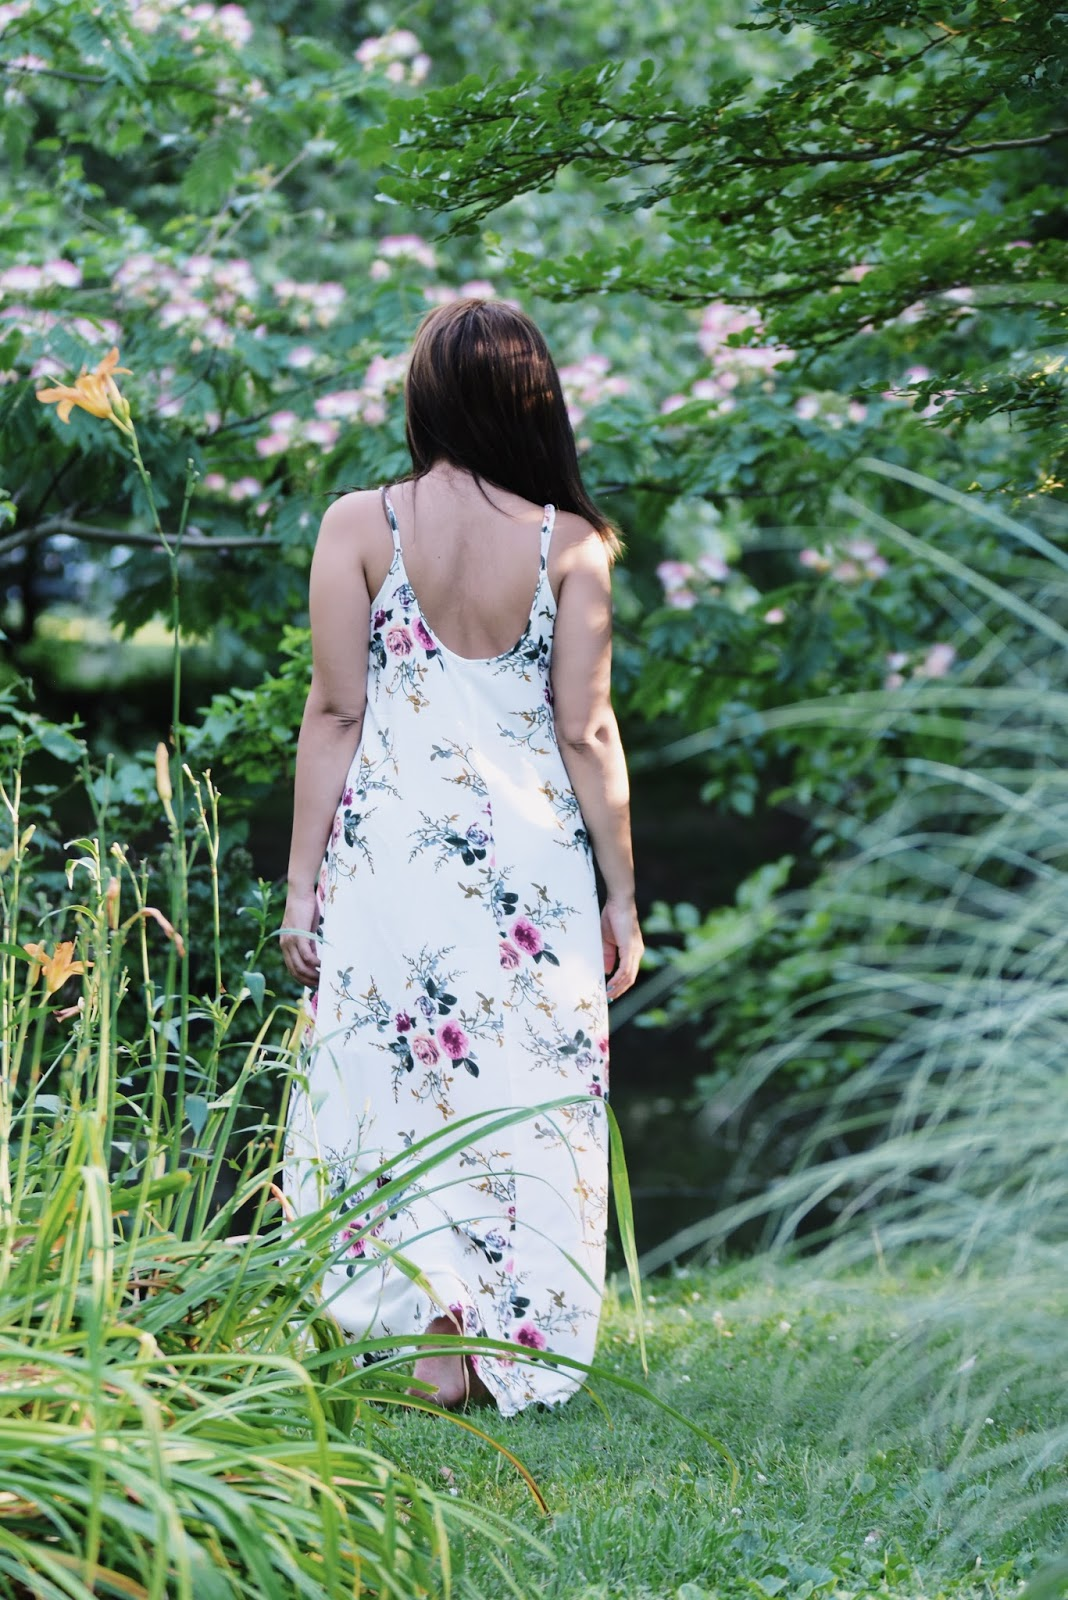 A little bit of heaven by Mari Estilo- Summer Dress-Floral dress- travelblogger-travel-maxi dress-summer style